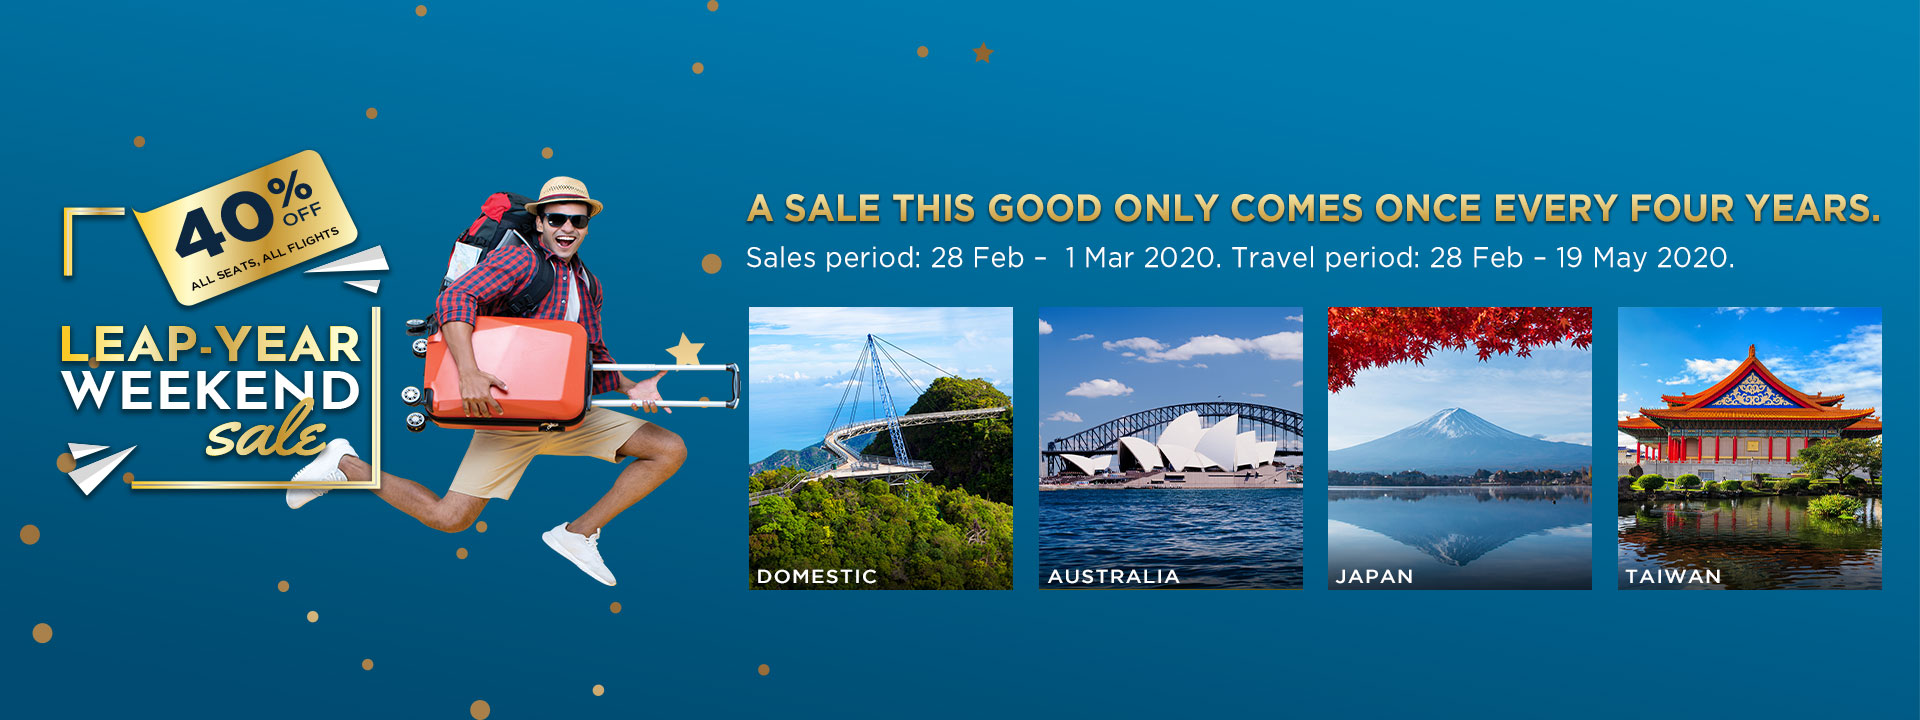 Malaysia Airlines Leap-Year Weekend Sale – 40% off fares MH LeapYearWeekendSale